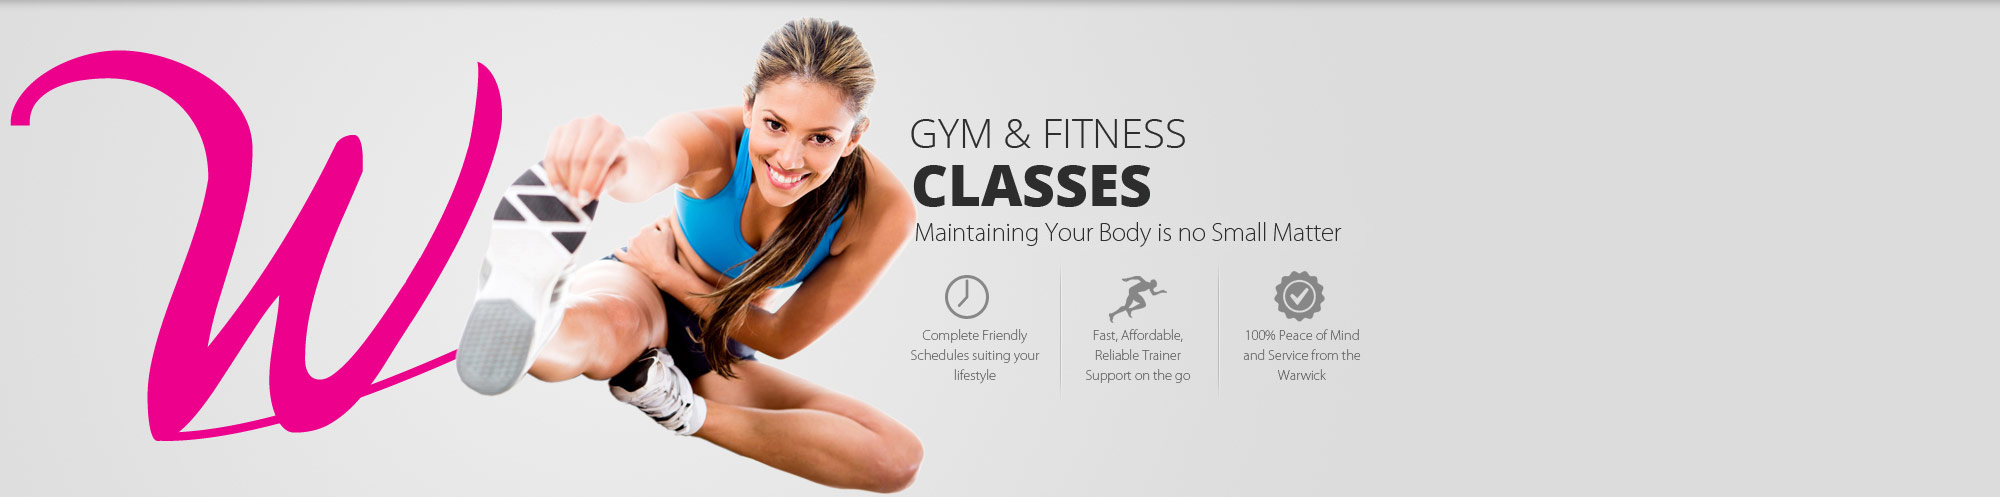 Warwick-Fitness-Classes-3